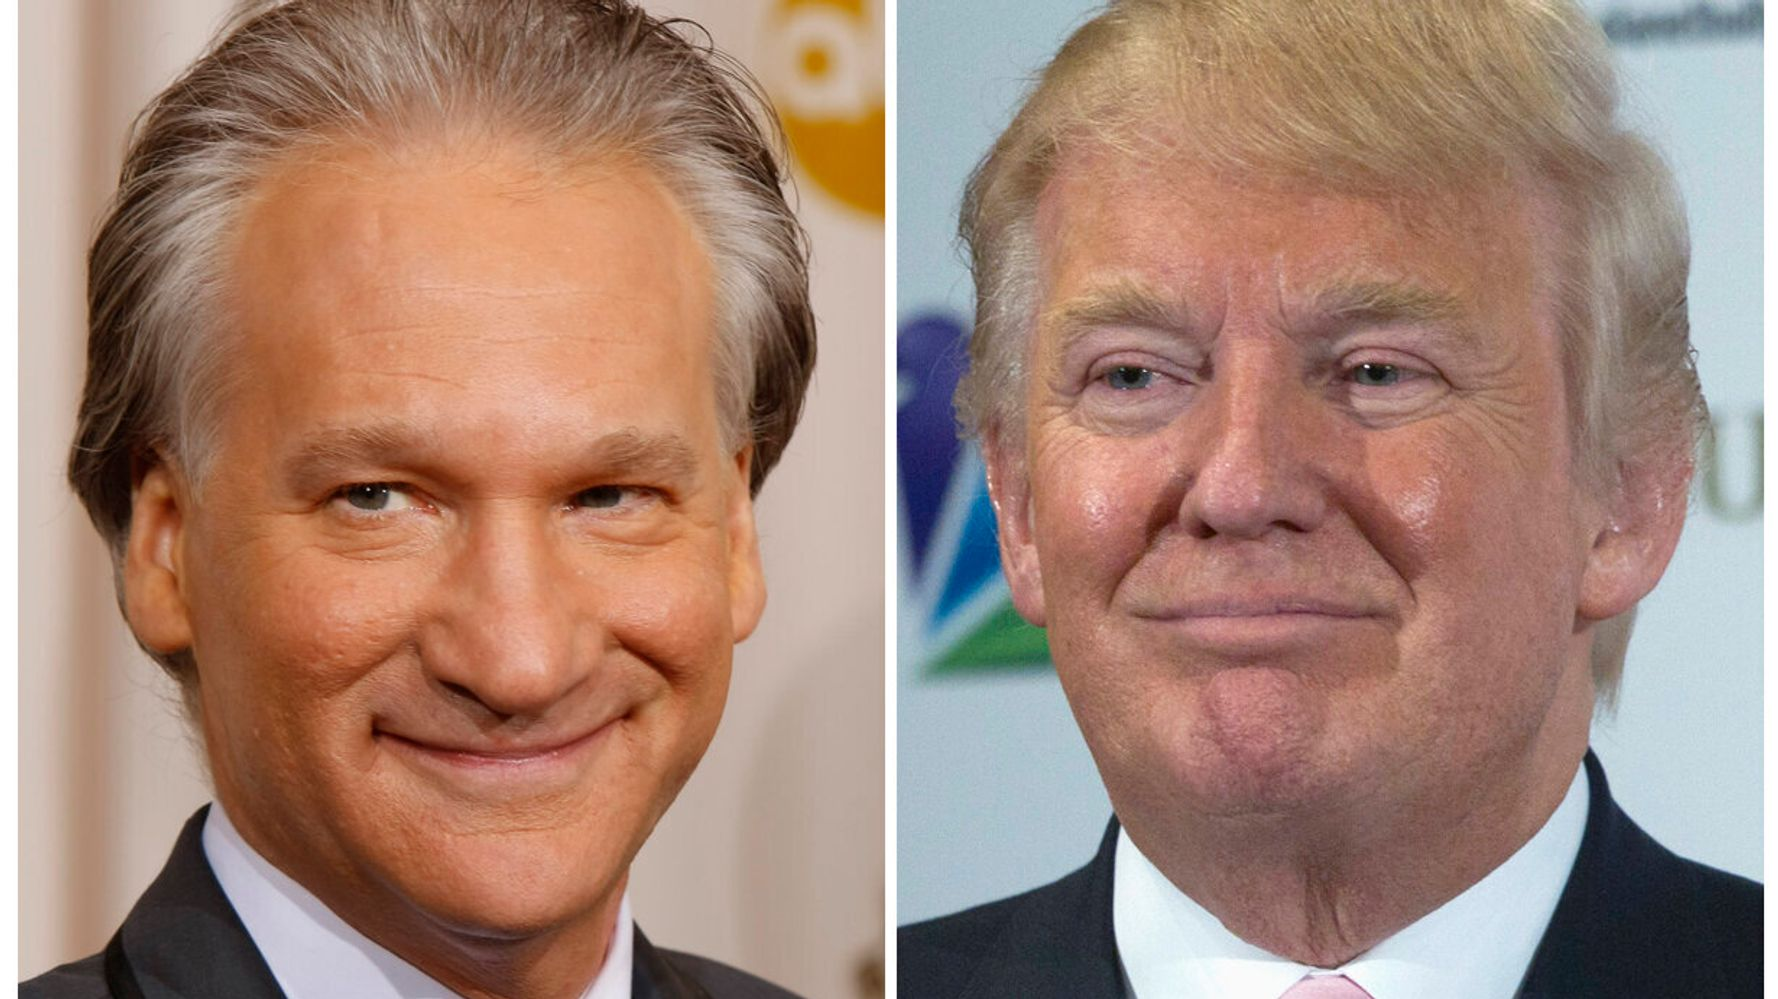 Bill Maher Has Perfectly Reasonable Response To Trump's Insulting Tweet